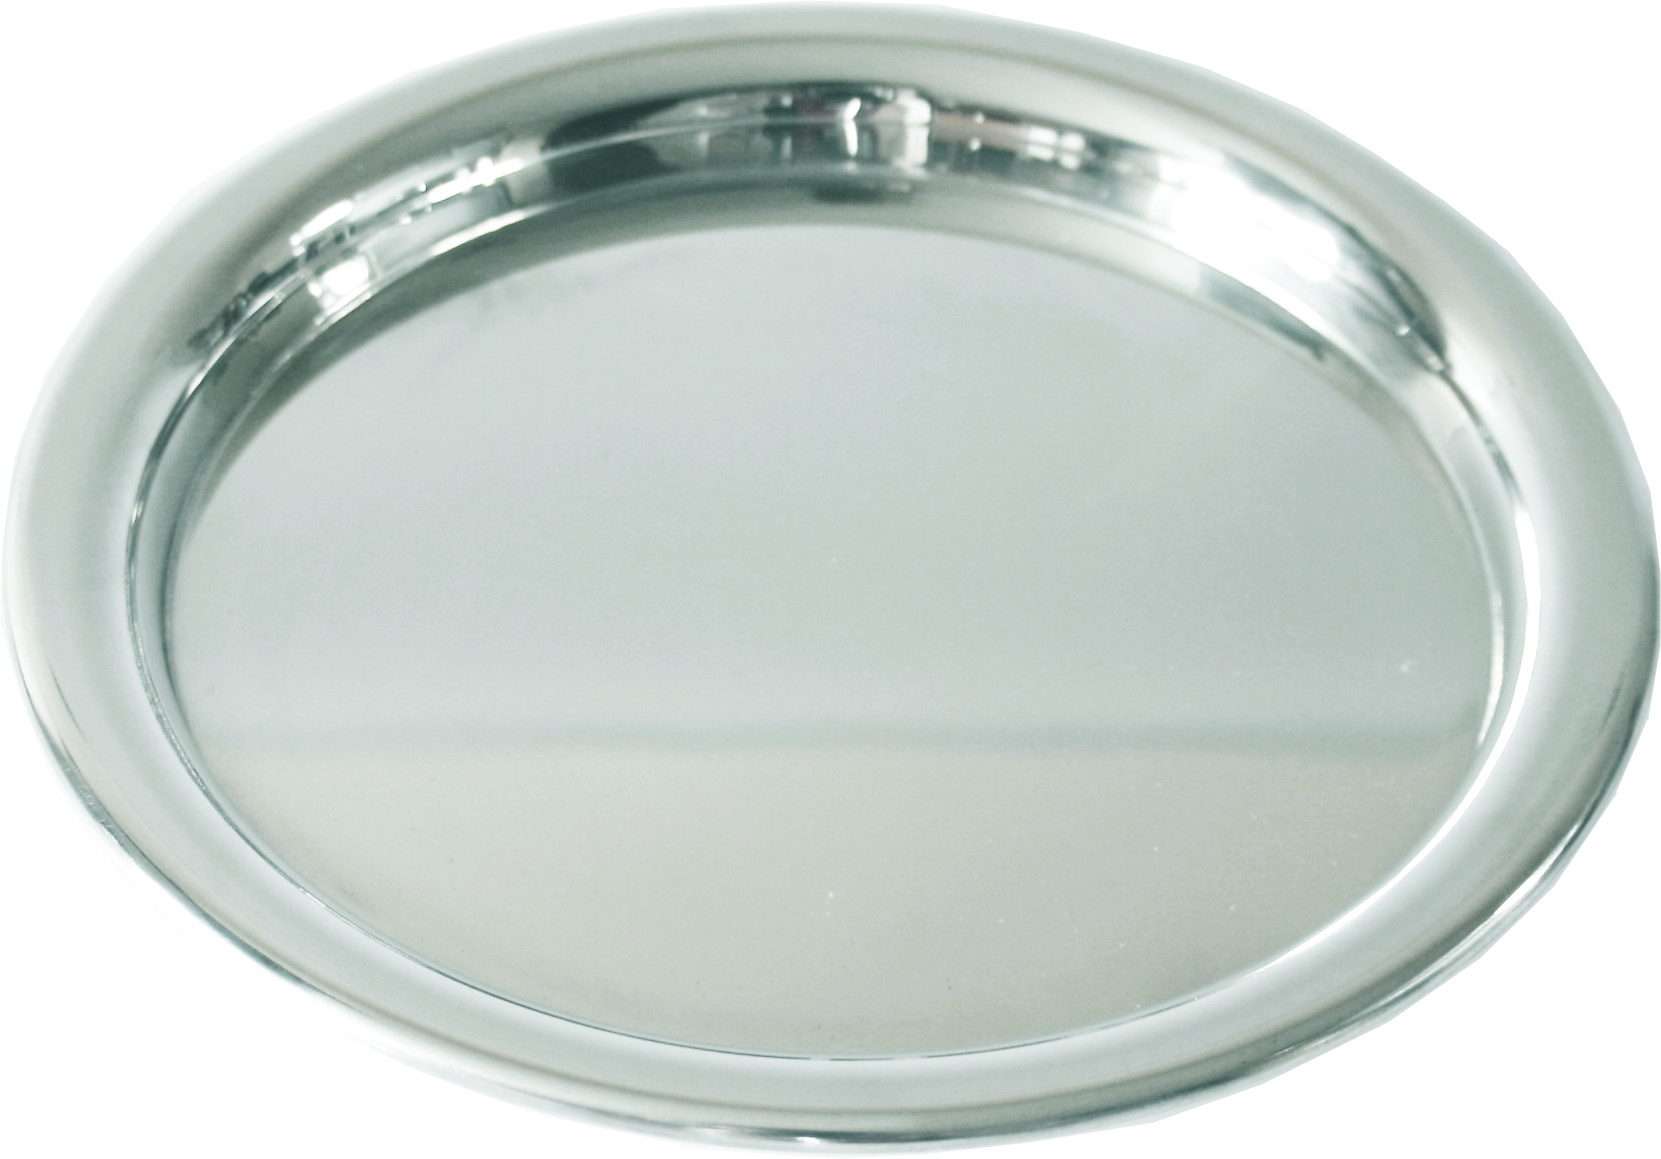 "Plain Round Engravable Tray 17cm (6.75"")"